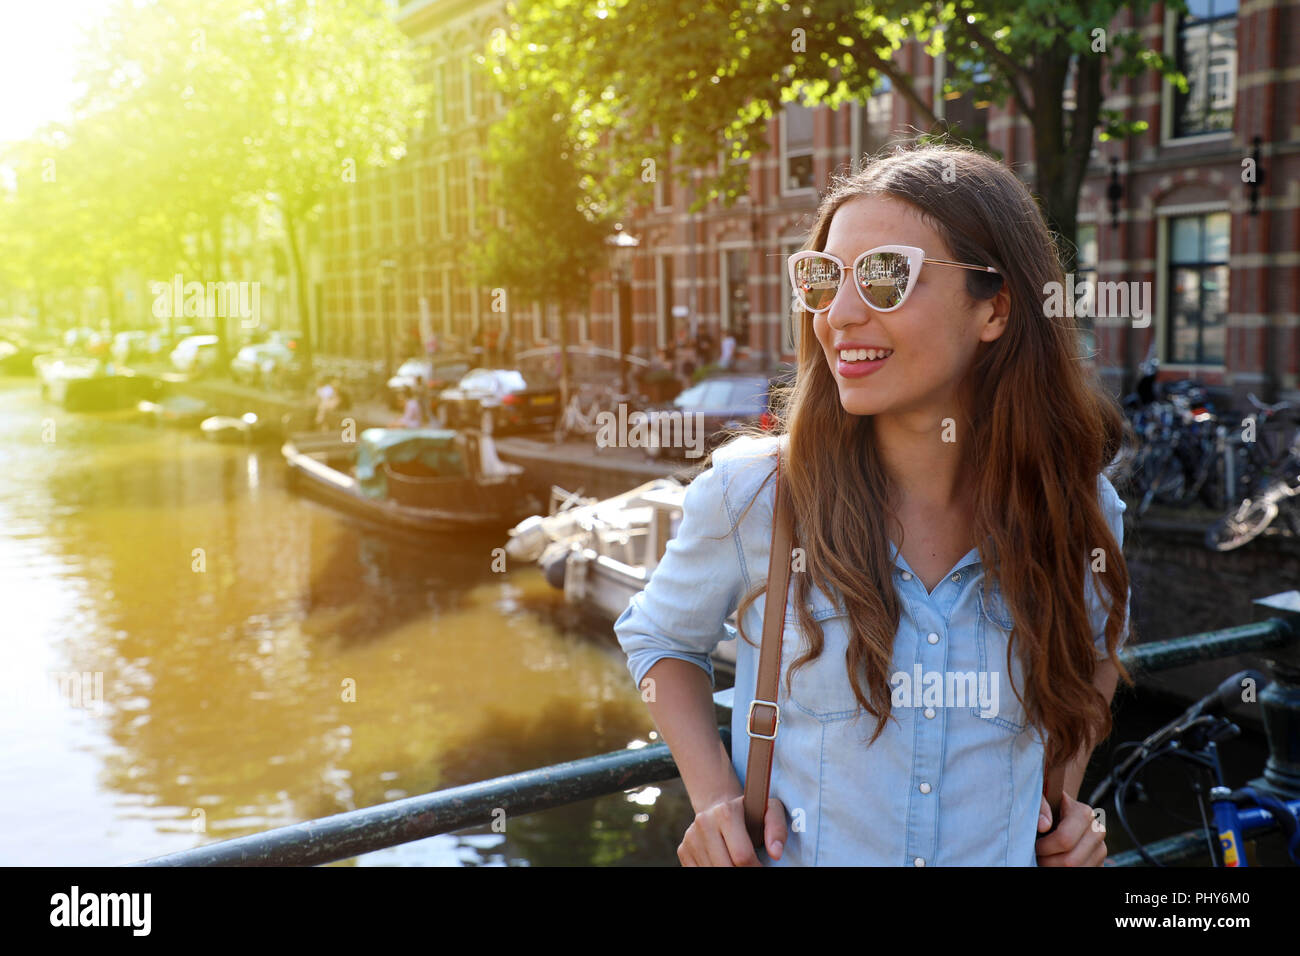 ed58330802081 Portrait of beautiful cheerful girl with sunglasses looking to the side on  one of typical Amsterdam channels